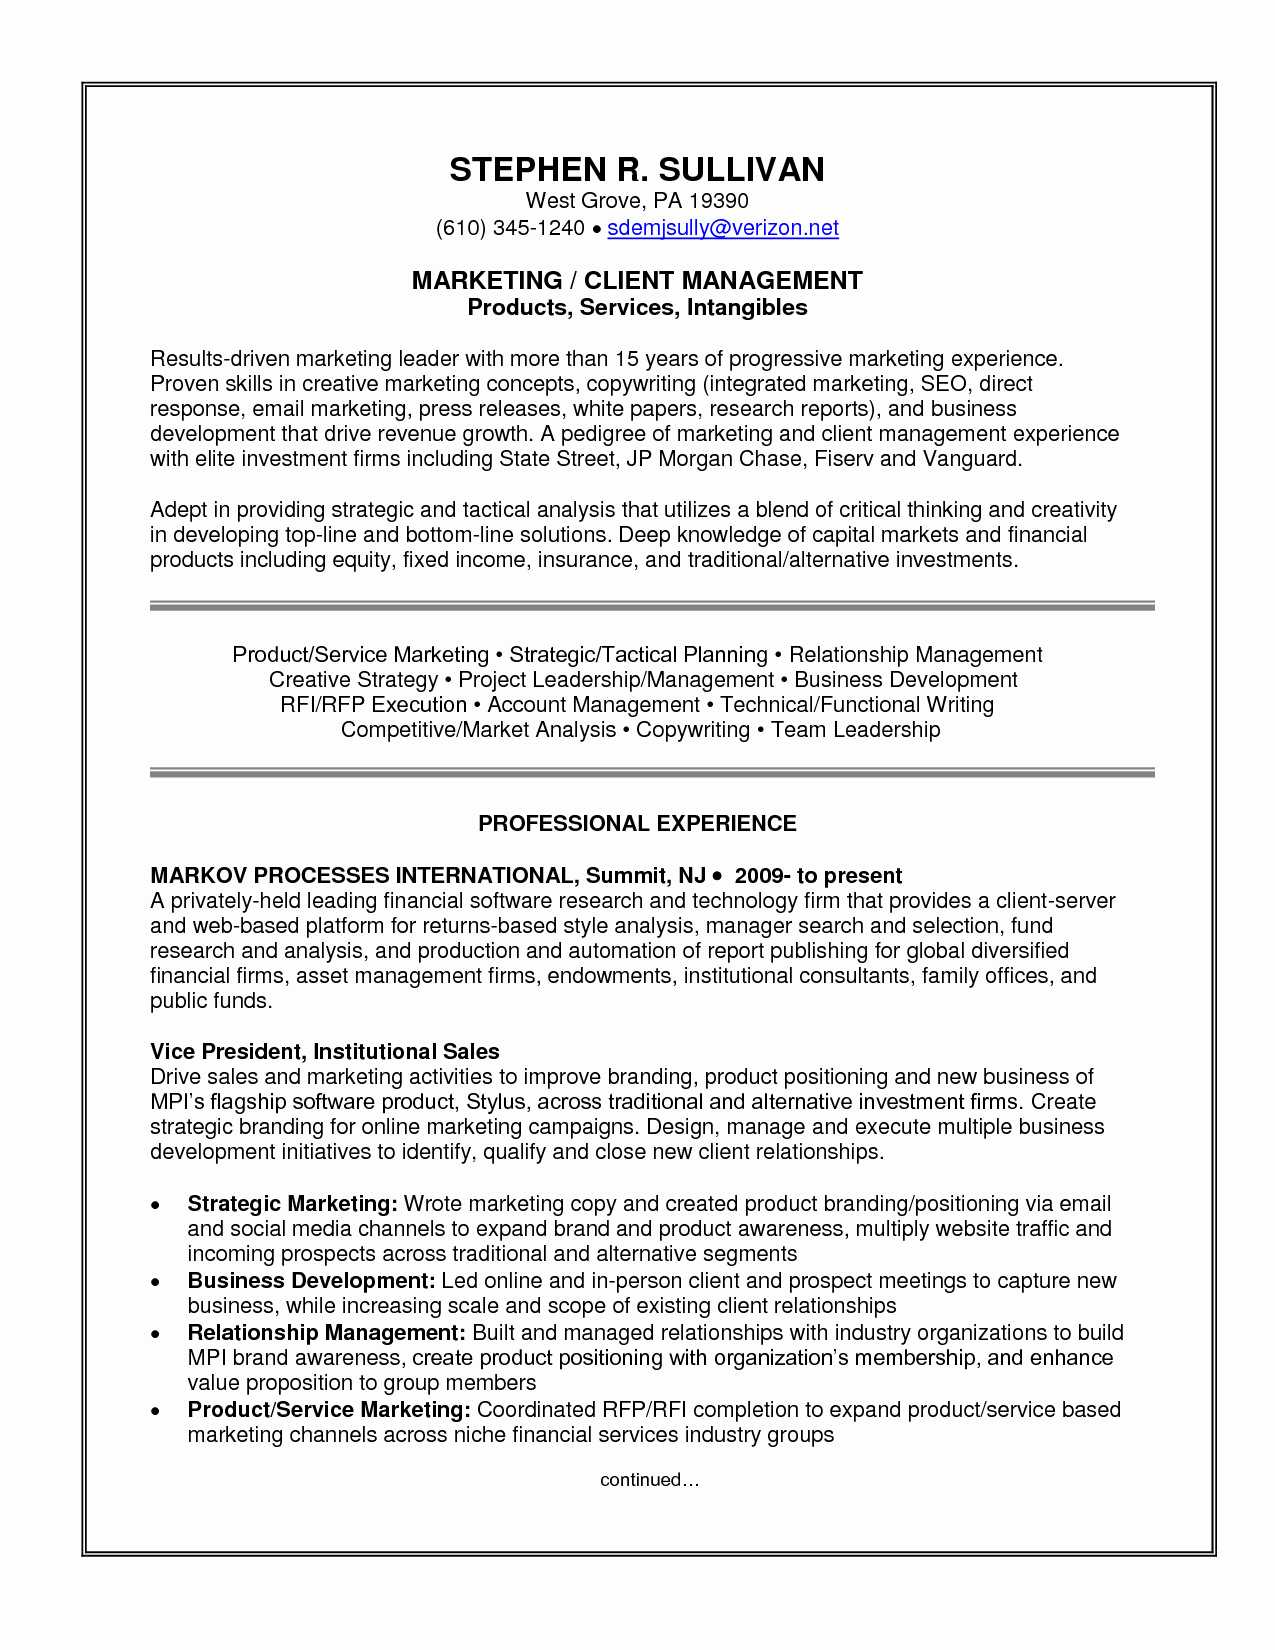 Managing A Checking Account Worksheet Answers with Resume Quick Summary